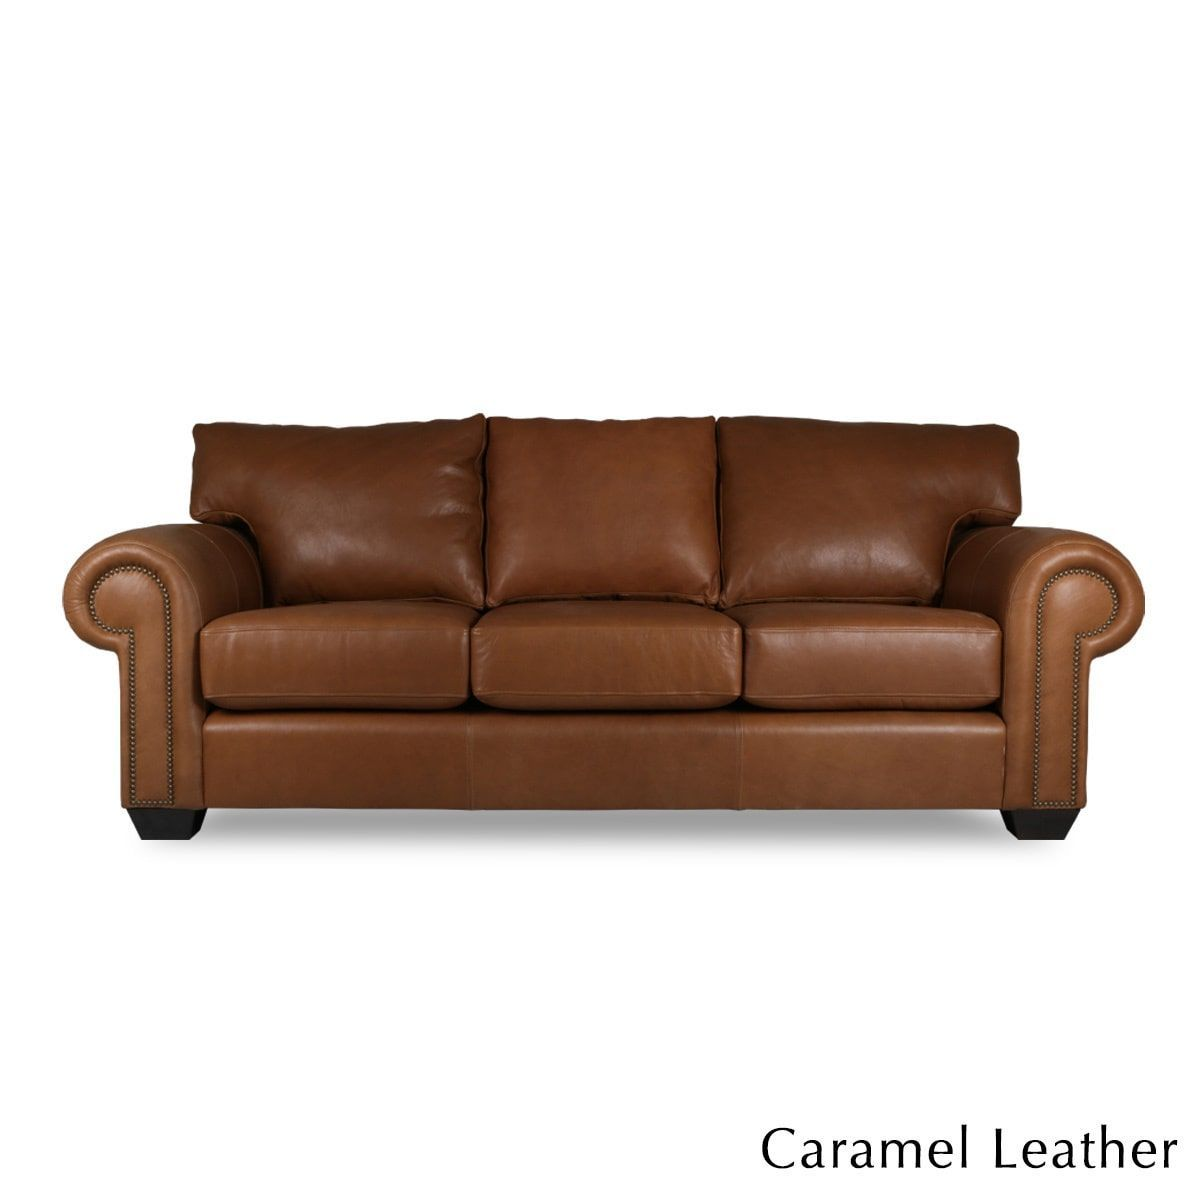 South Cone Home Made To Order Cambridge Italian Leather Sofa